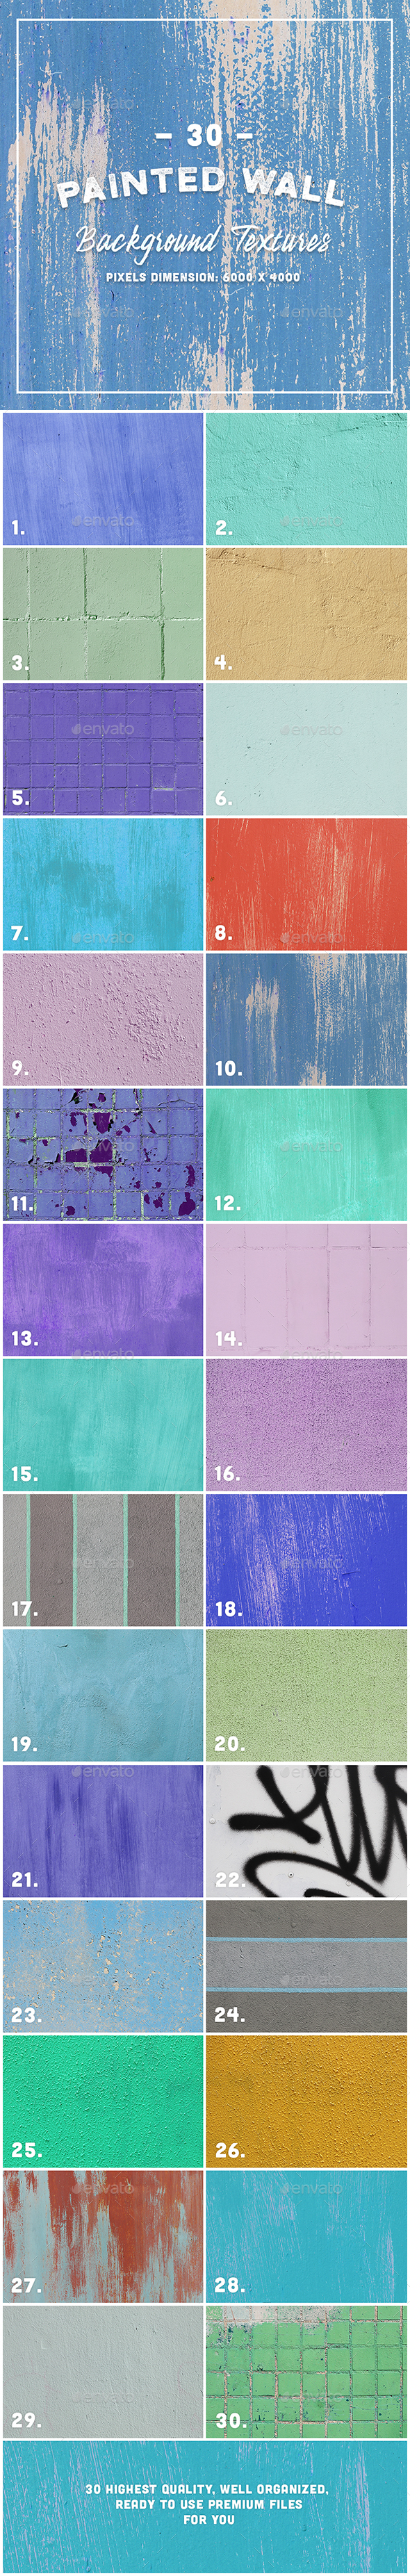 30 Painted Wall Background Textures - Industrial / Grunge Textures